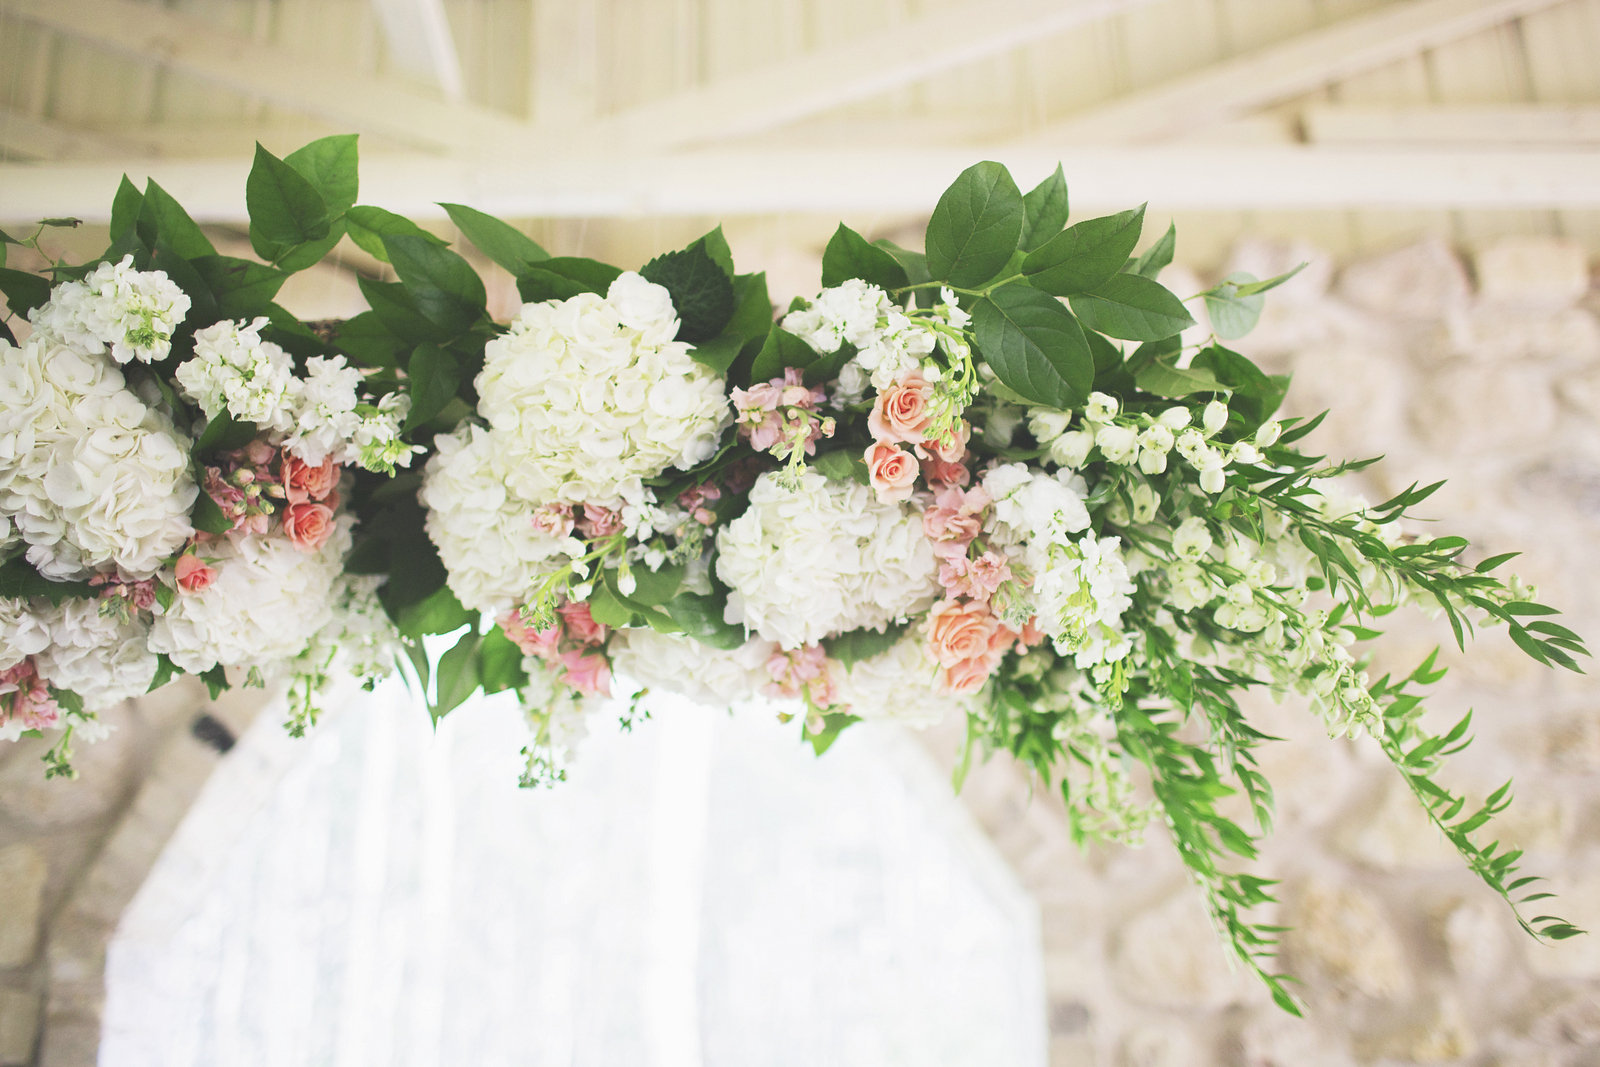 White and Peach Wedding Flowers - Wedding Ceremony Flowers